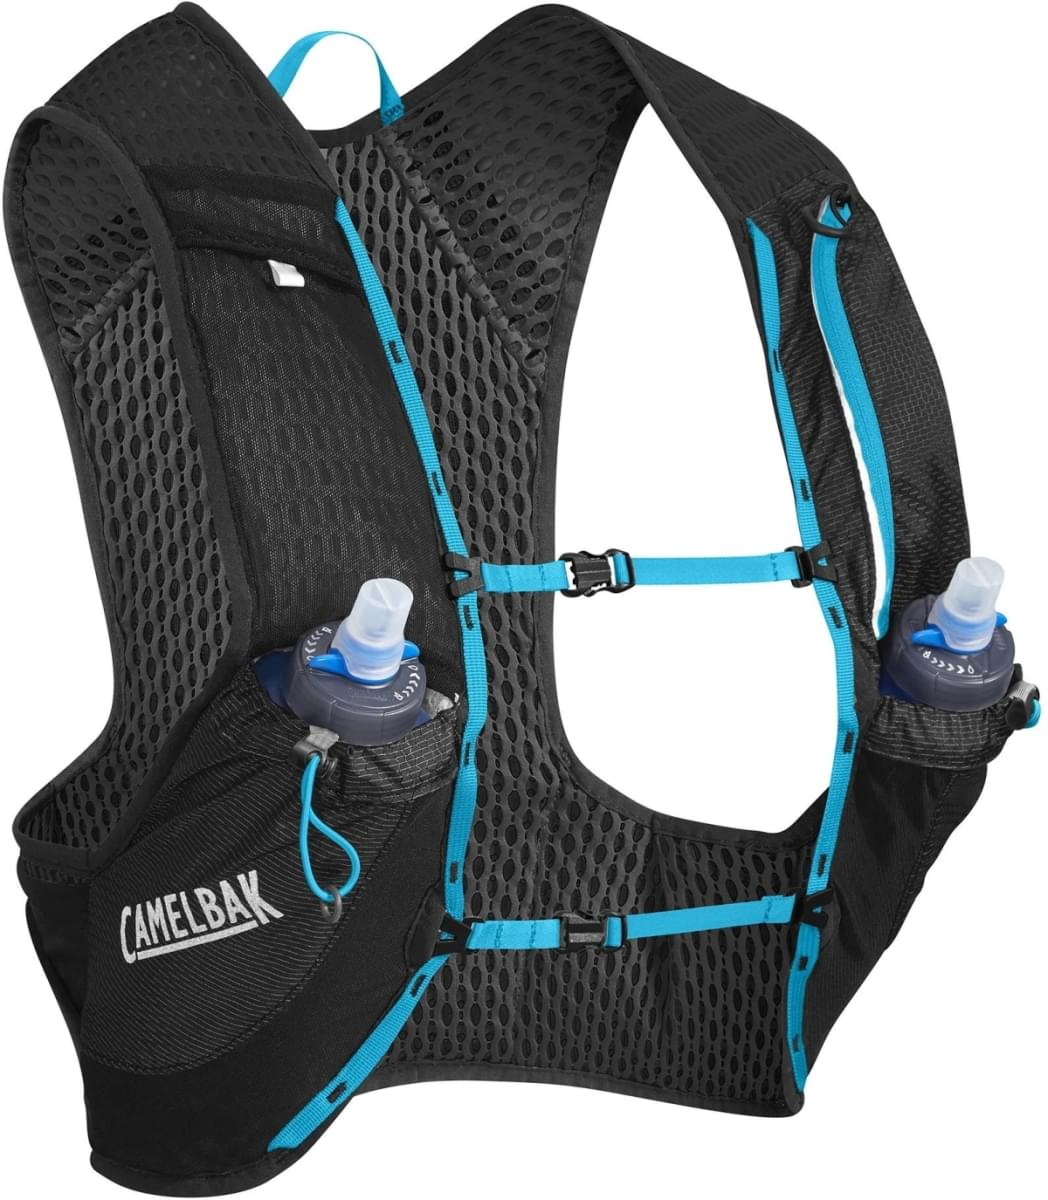 Camelbak Nano Vest - Black/Atomic Blue M